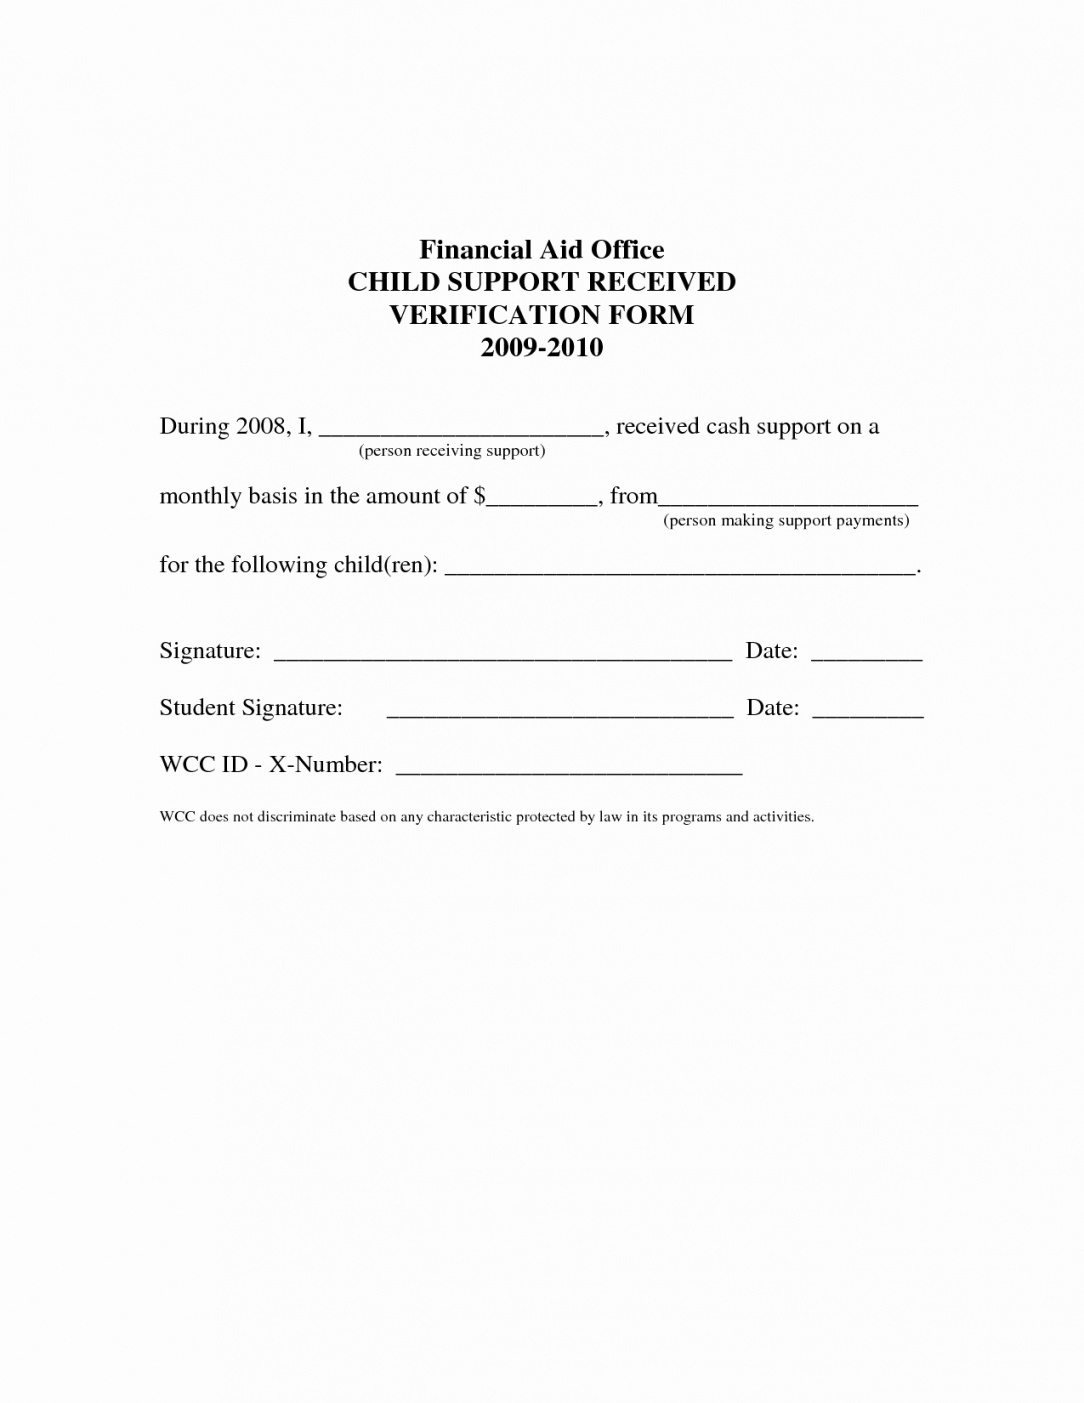 free proof of child support letter template collection  letter template proof of child support letter template